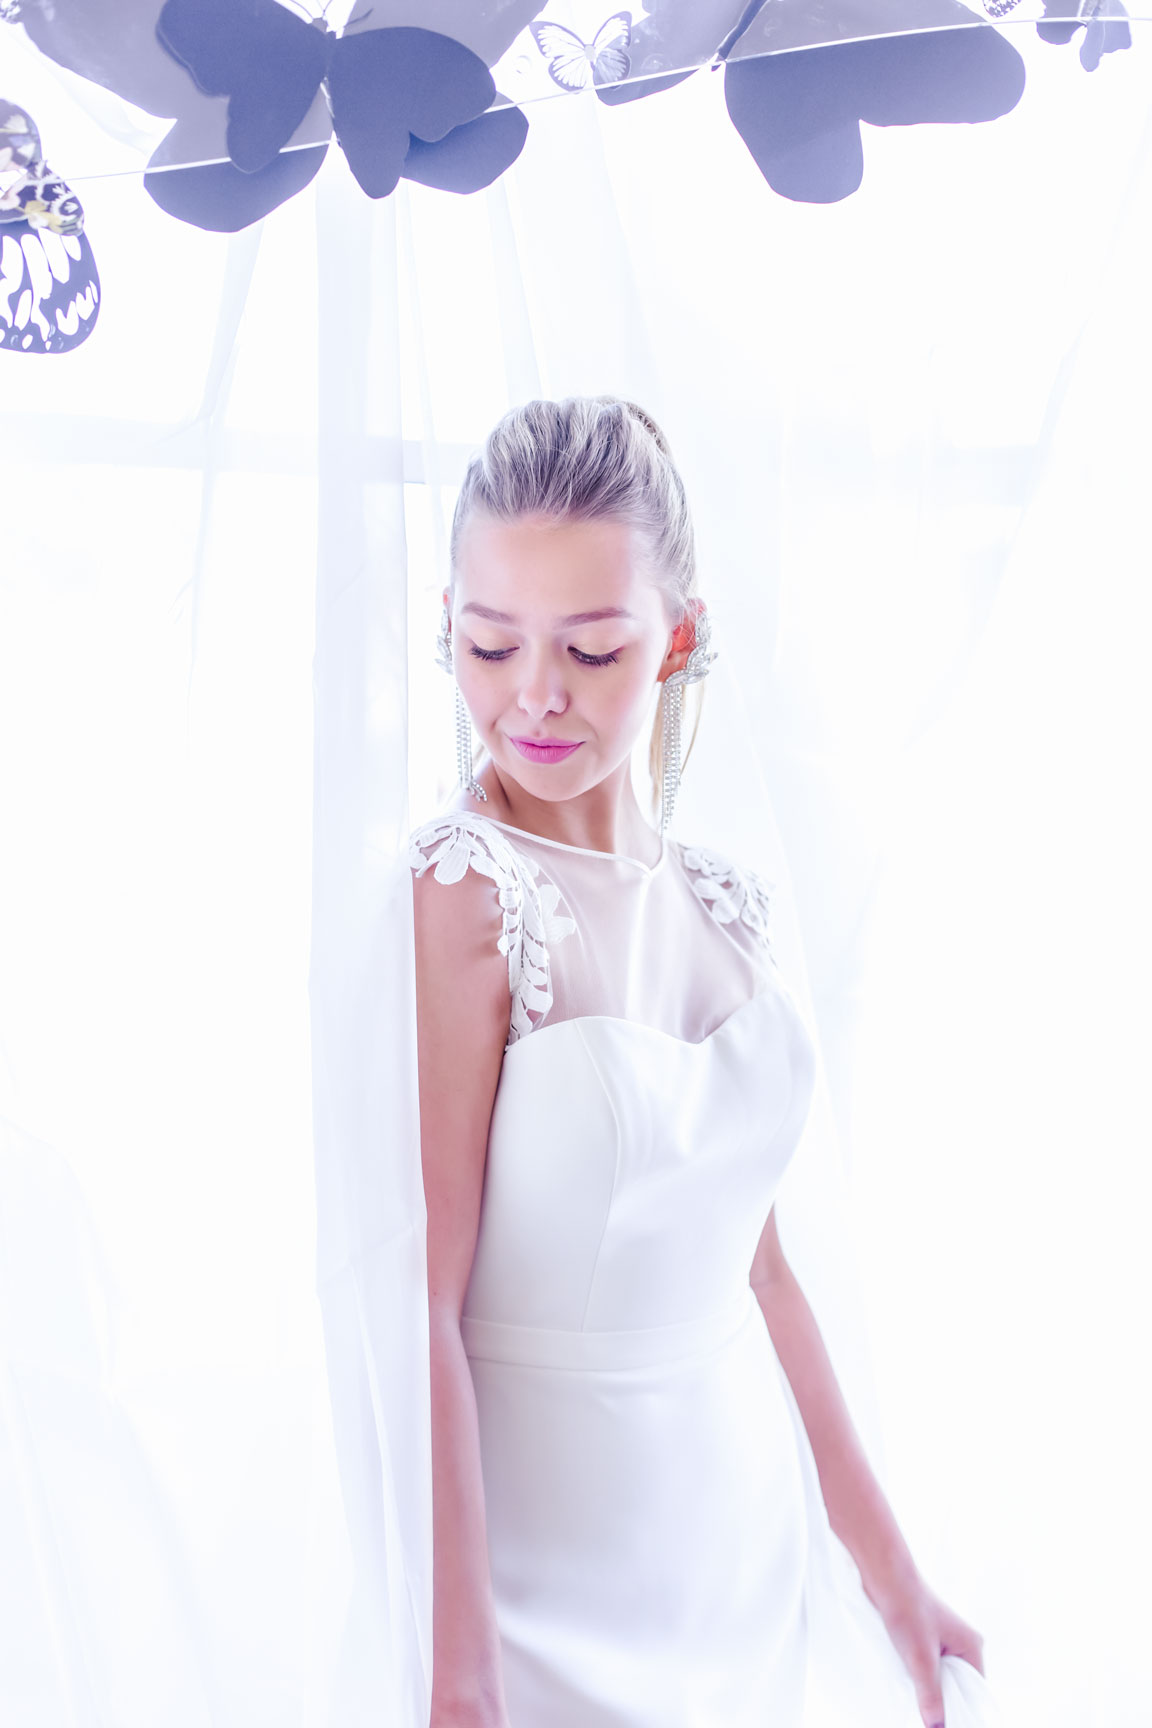 May & Grace Bridal - 3 alternative bridal looks 10 - modern bride